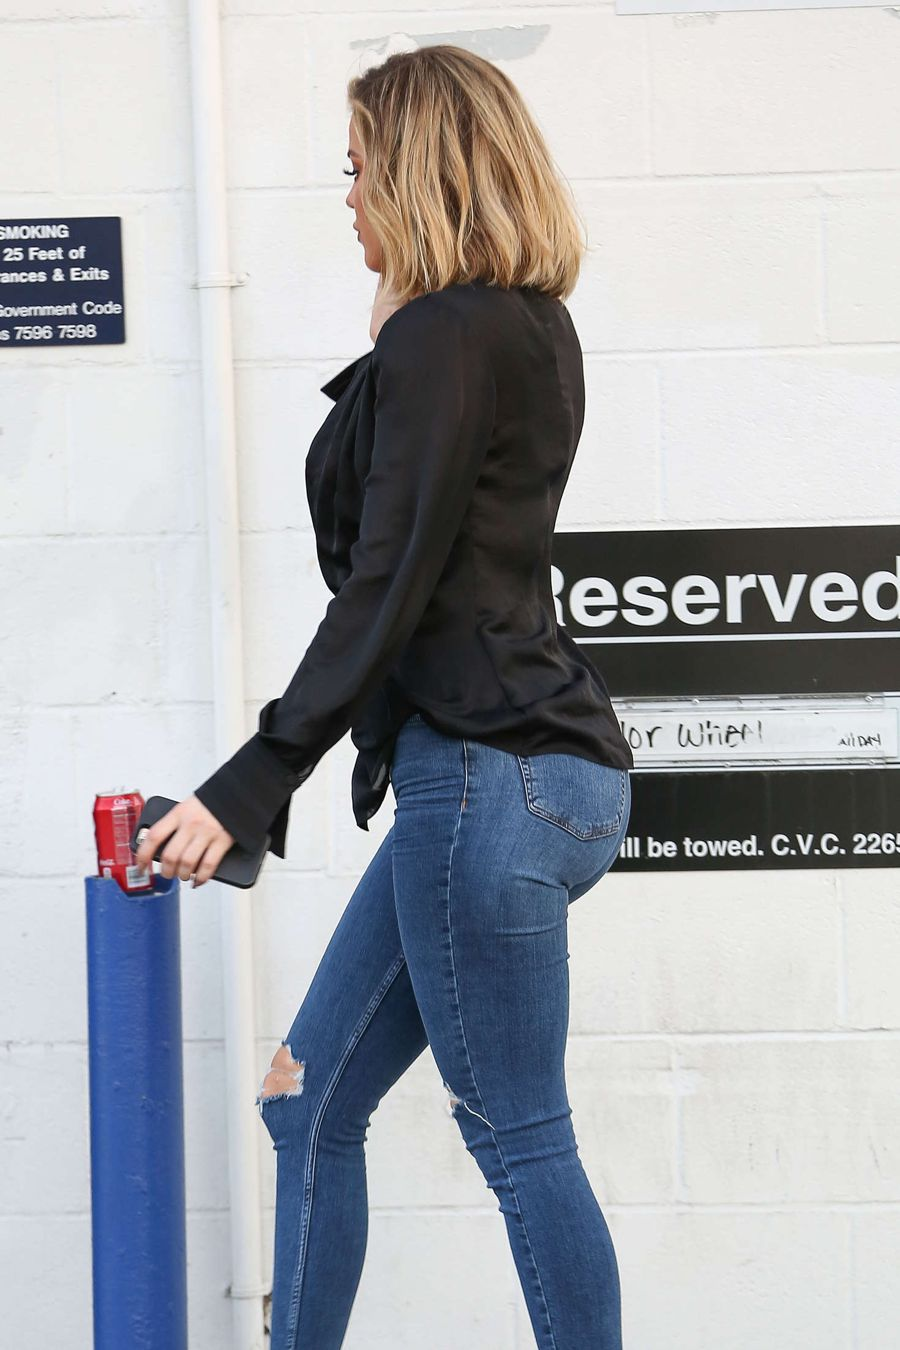 Khloe Kardashian in Jeans leaving the studio in Van Nuys